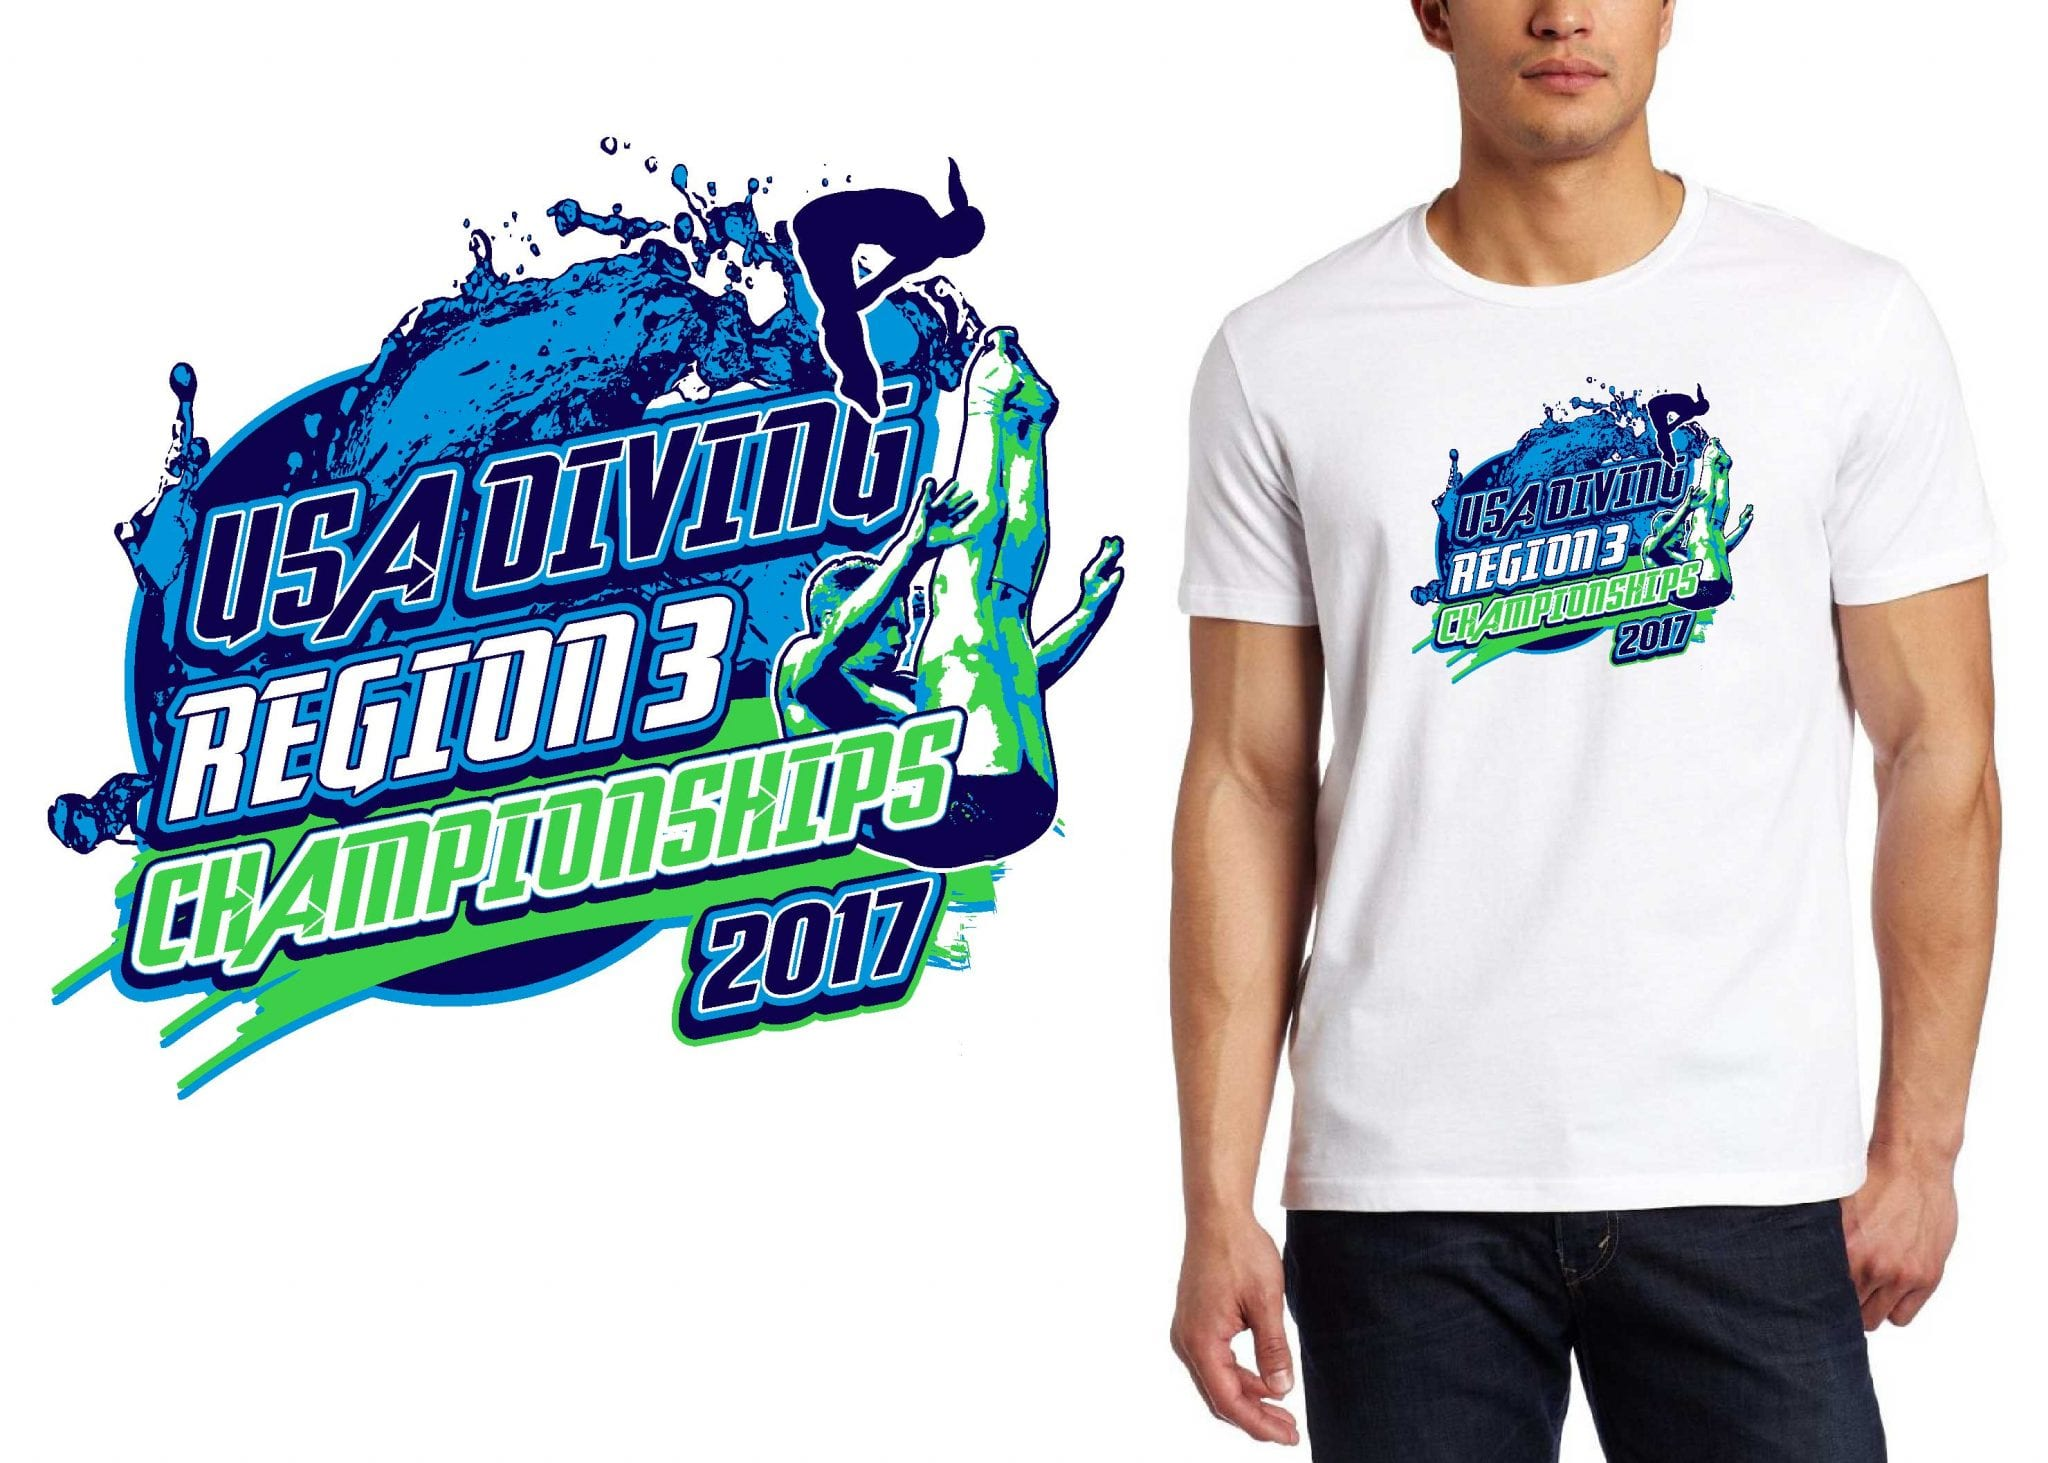 2017 USA Diving Region 3 Championships vector logo design for swimming and diving t-shirt UrArtStudio